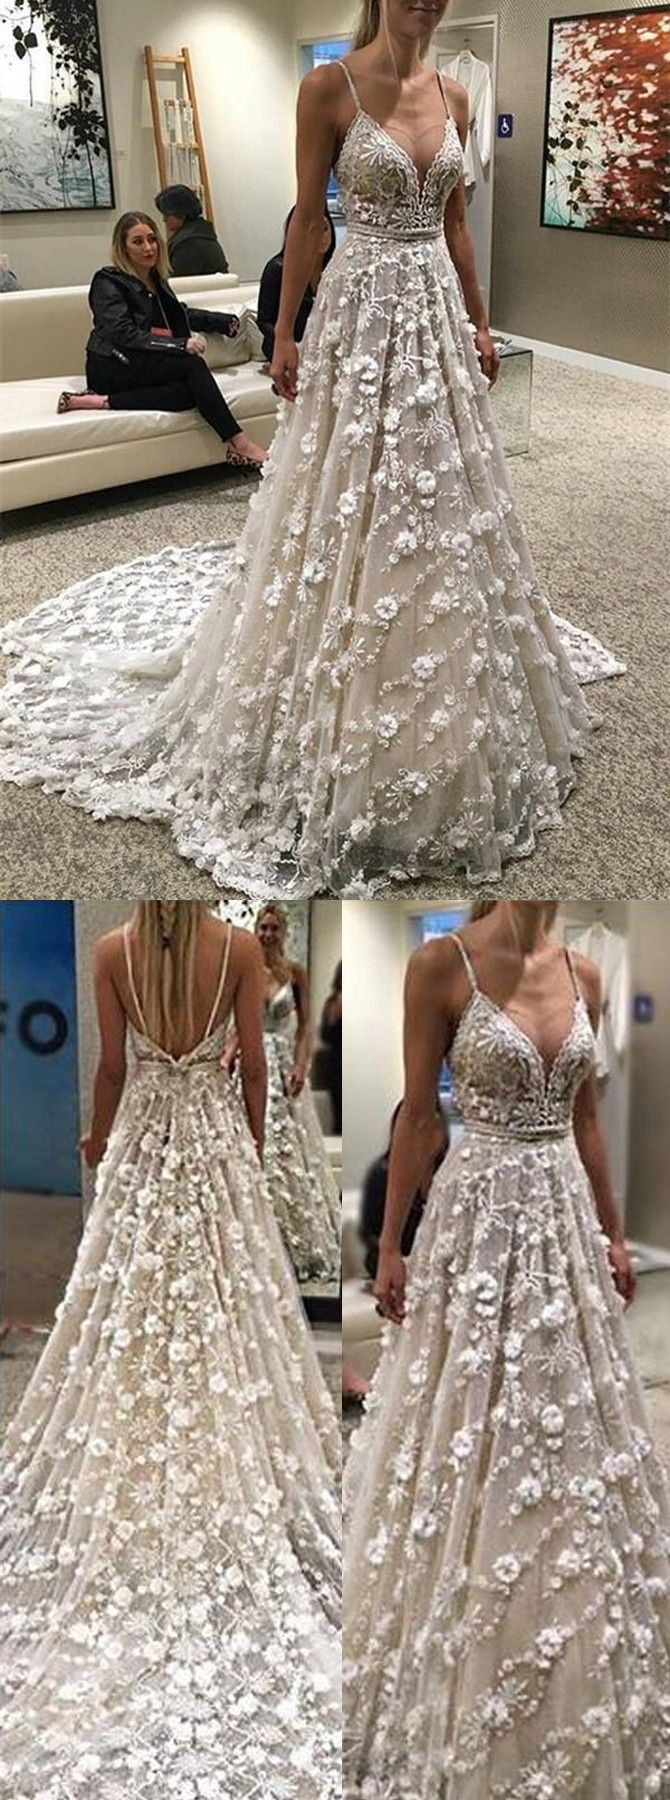 Best 25 unique wedding dress ideas on pinterest fashion wedding unique wedding dressescountry wedding dressessexy wedding dressescourt train wedding dresses ombrellifo Image collections